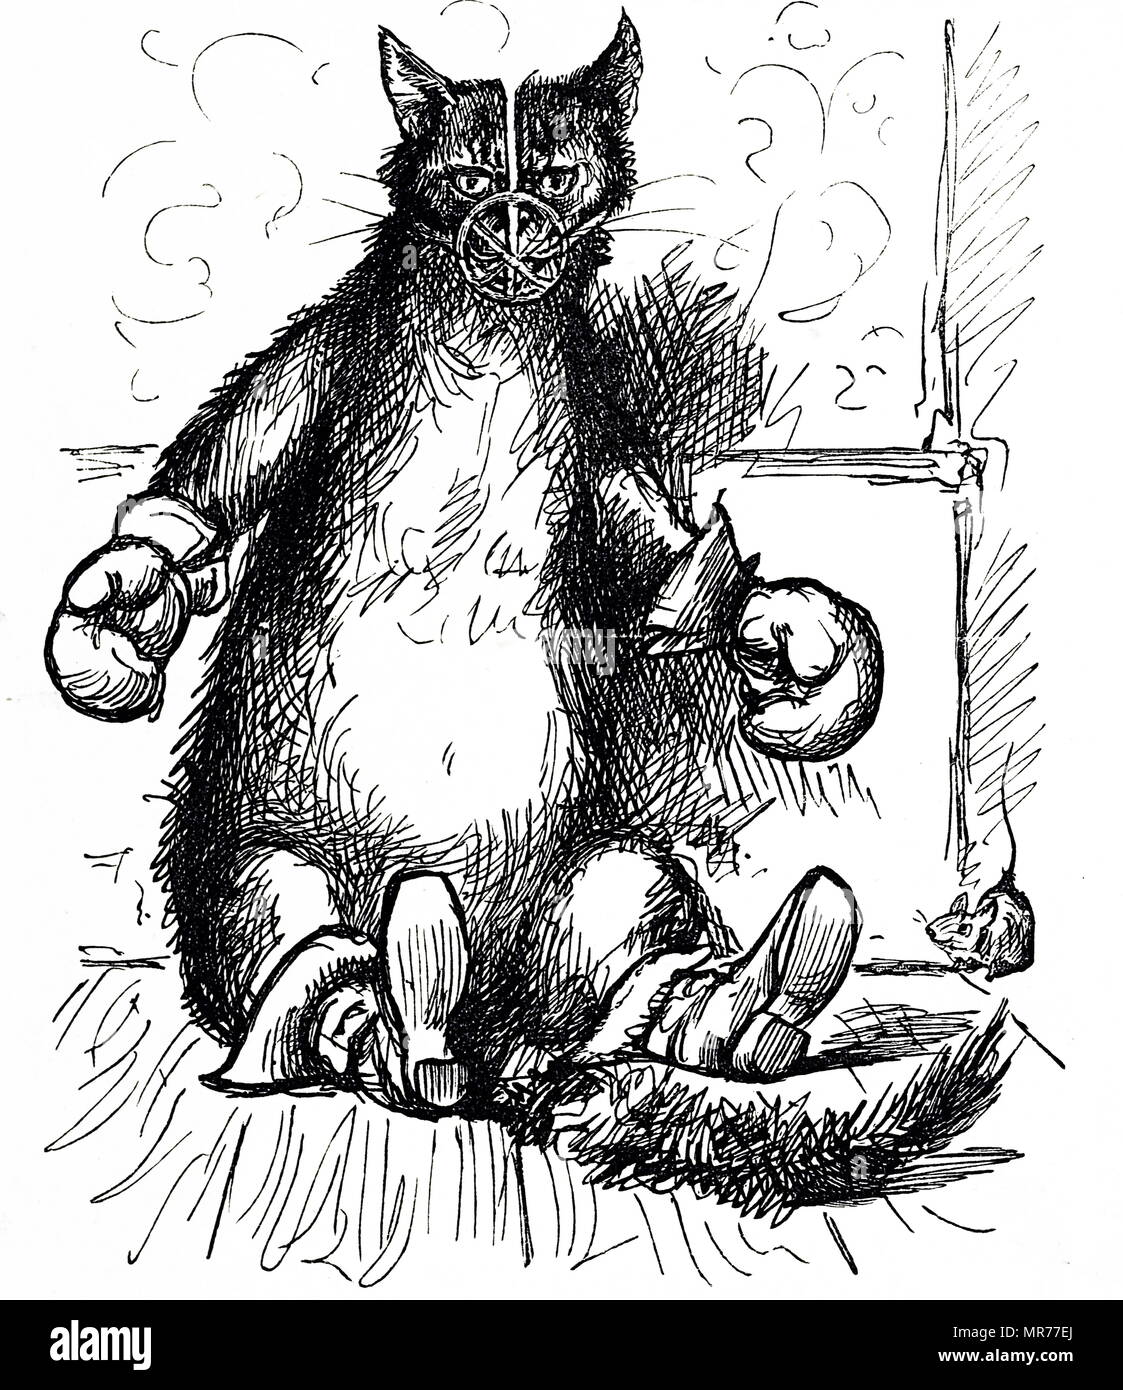 Cartoon depicting a cat wearing a muzzle, gloves and boots trying to prevent the spread of disease presumed to be represented by the mouse. Concern about the spread of epidemics was commonplace in Victorian London. Dated 19th century - Stock Image